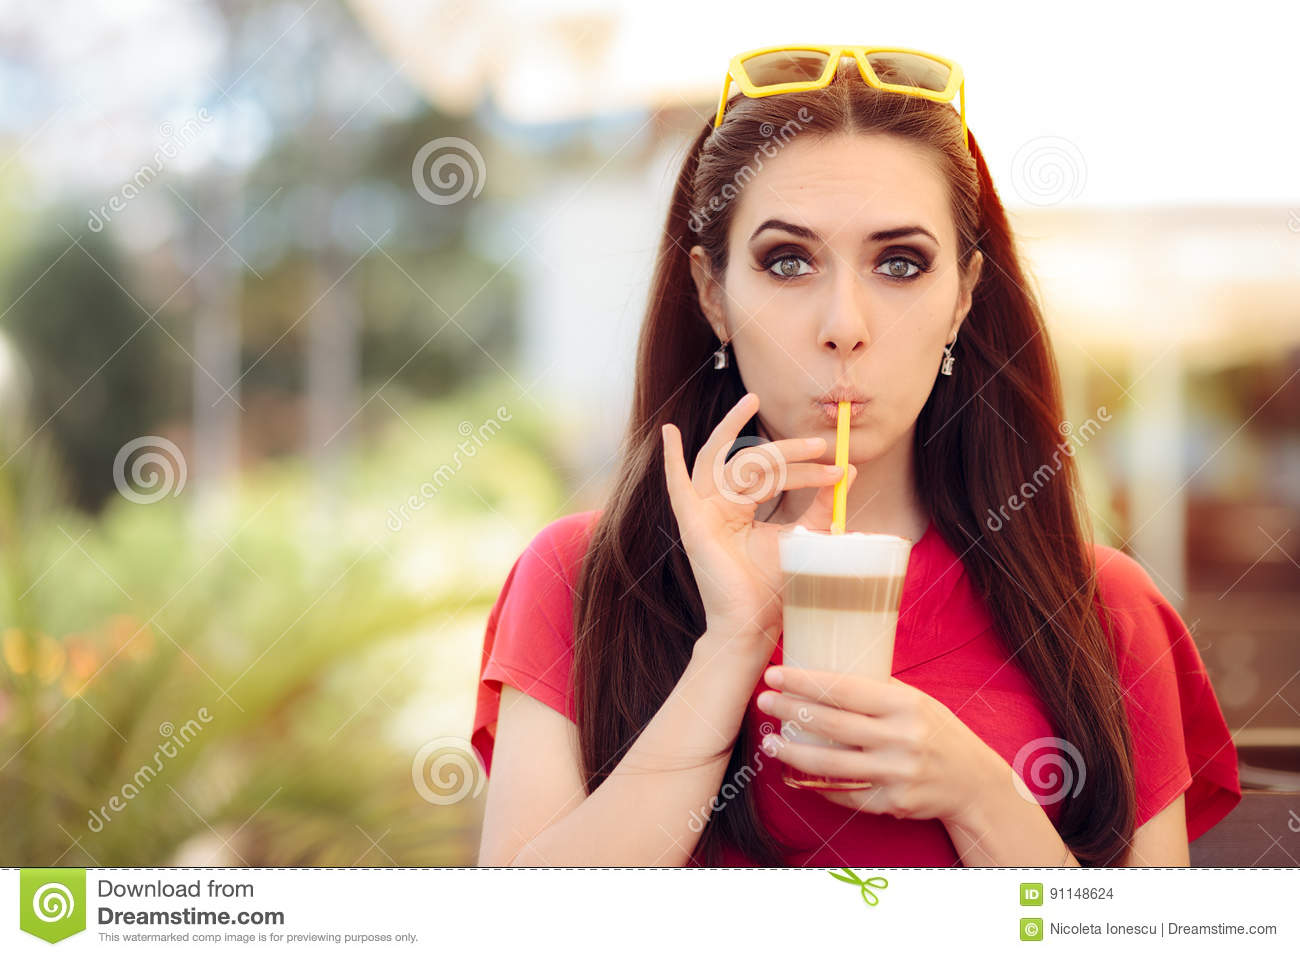 Summer Girl and Sipping Coffee Drink Trough a Straw